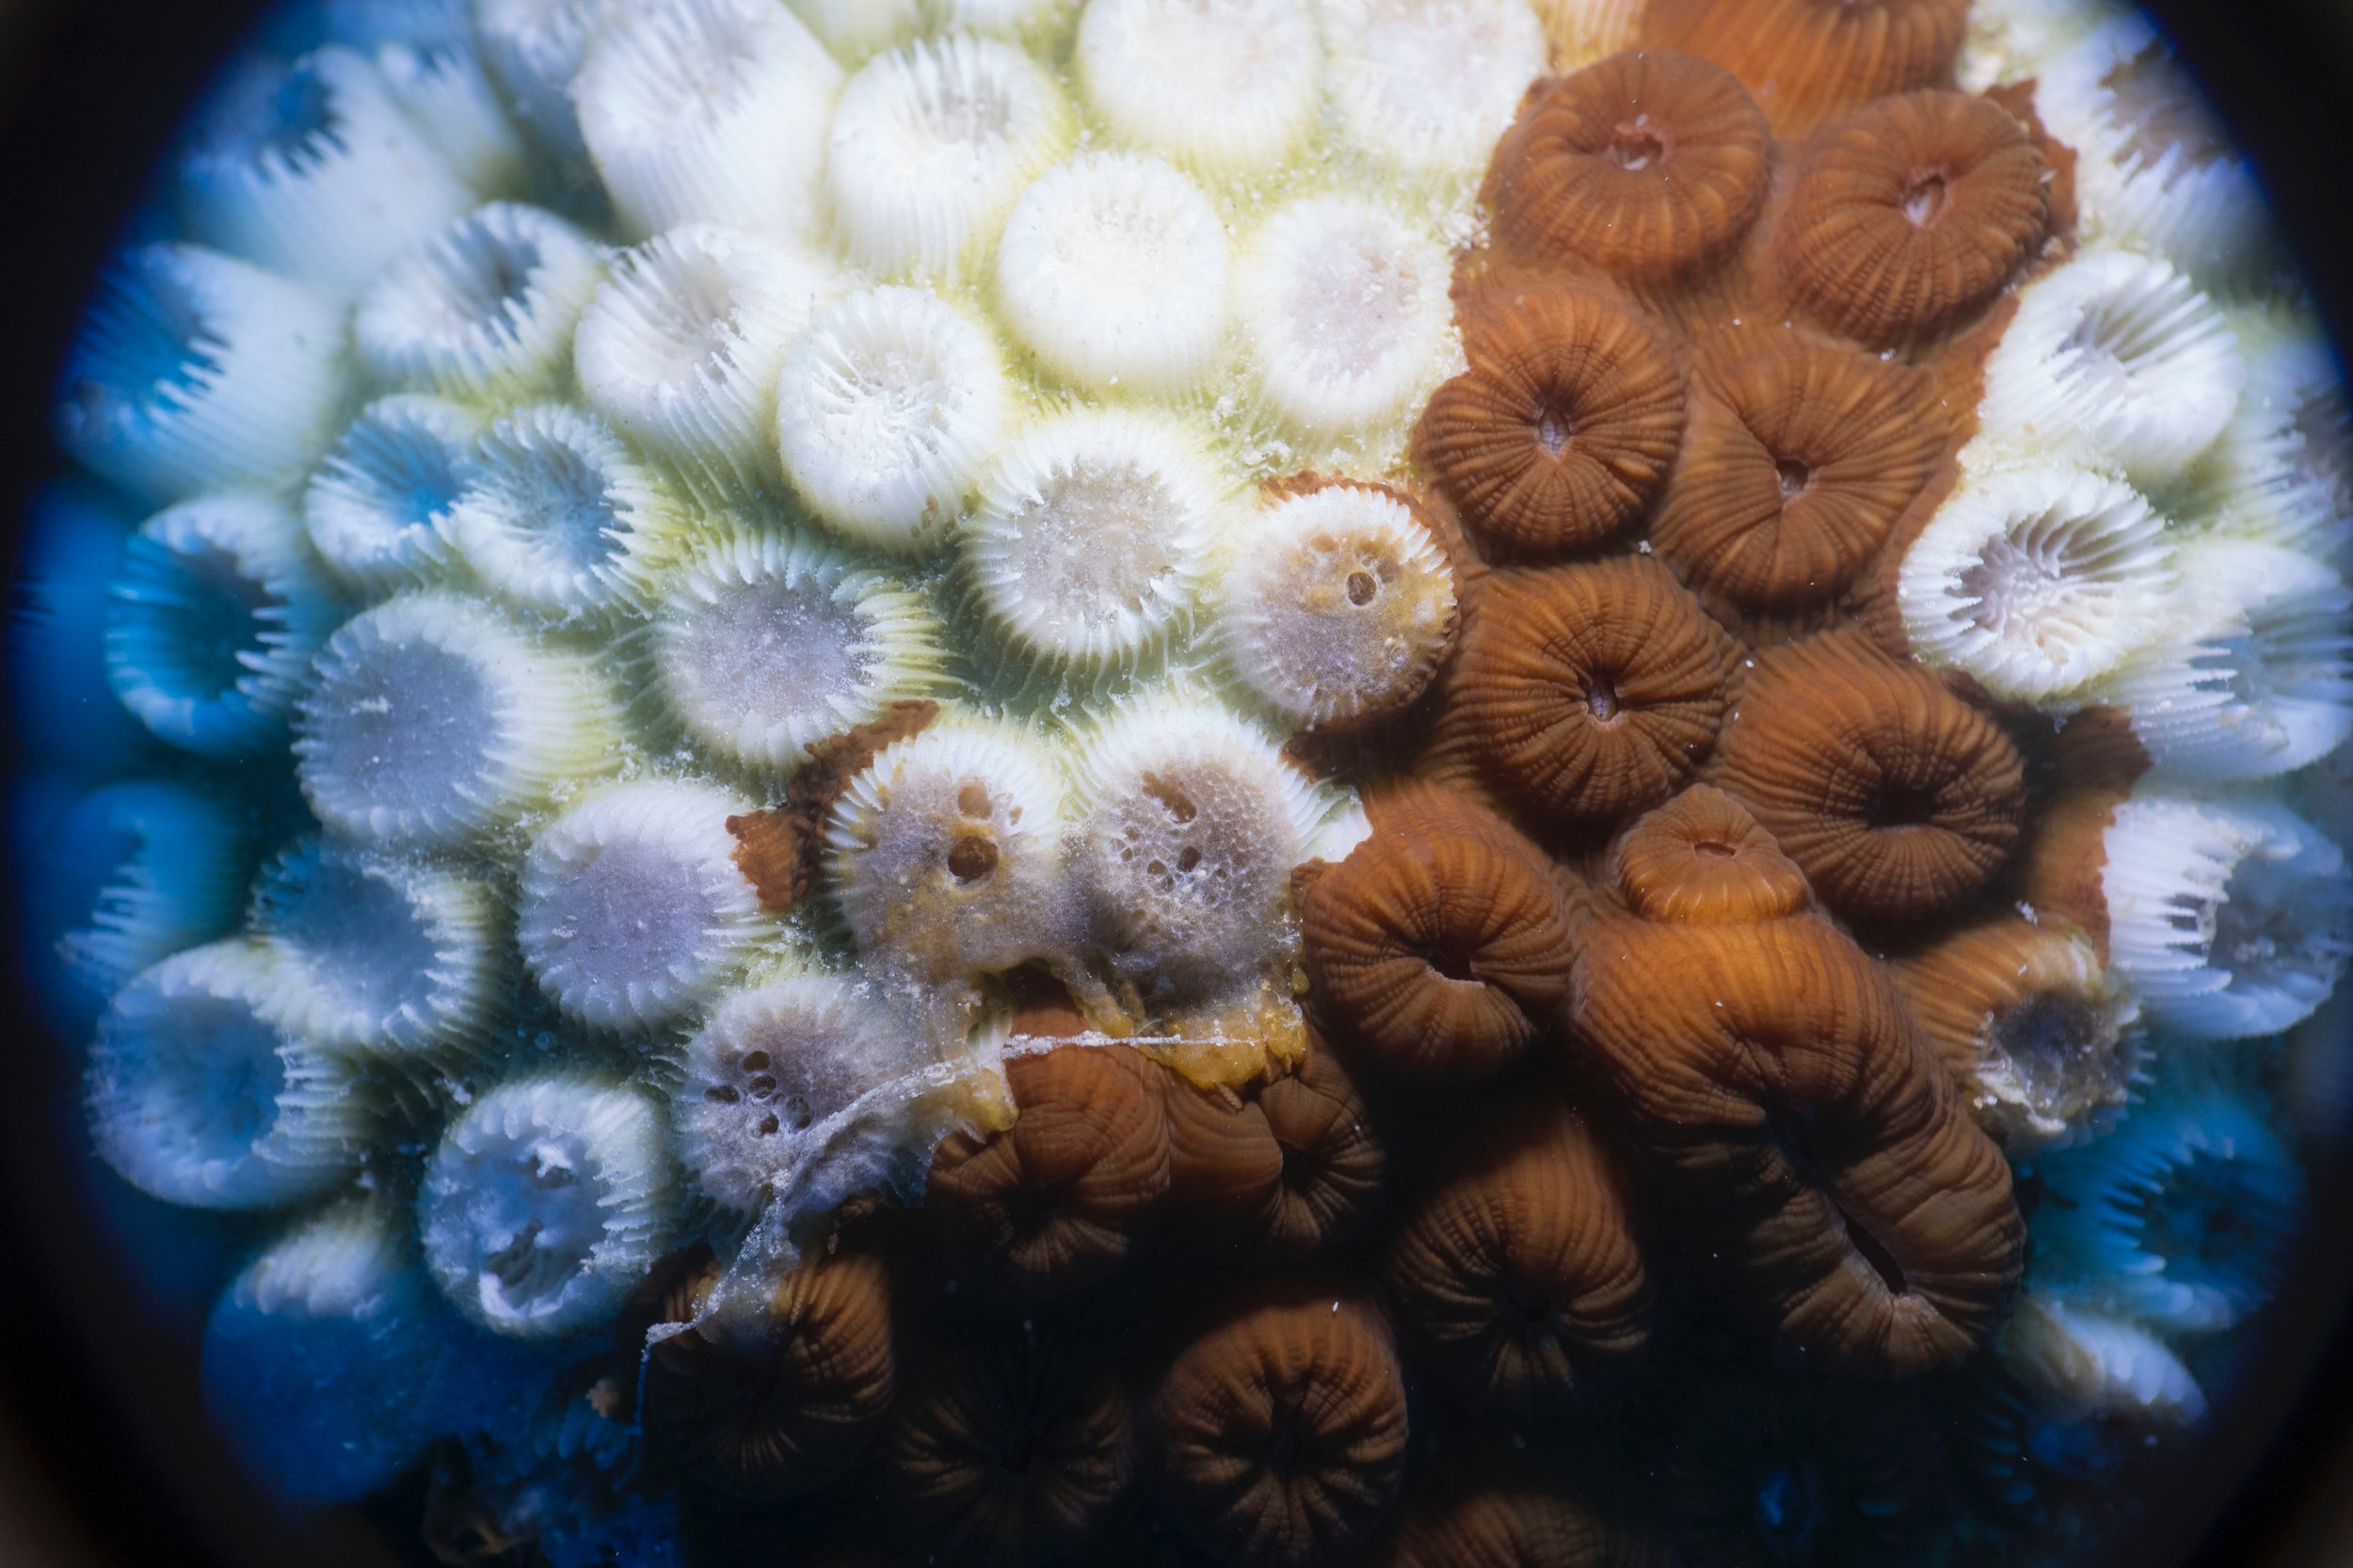 Diseased Large-Cup Star Coral . A close up of a diseased large-cup star coral. Stony coral tissue loss disease causes the tissue on affected corals to rapidly liquefy and sometimes leaves a white film behind.  Photo credit: Viktor Brandtneris